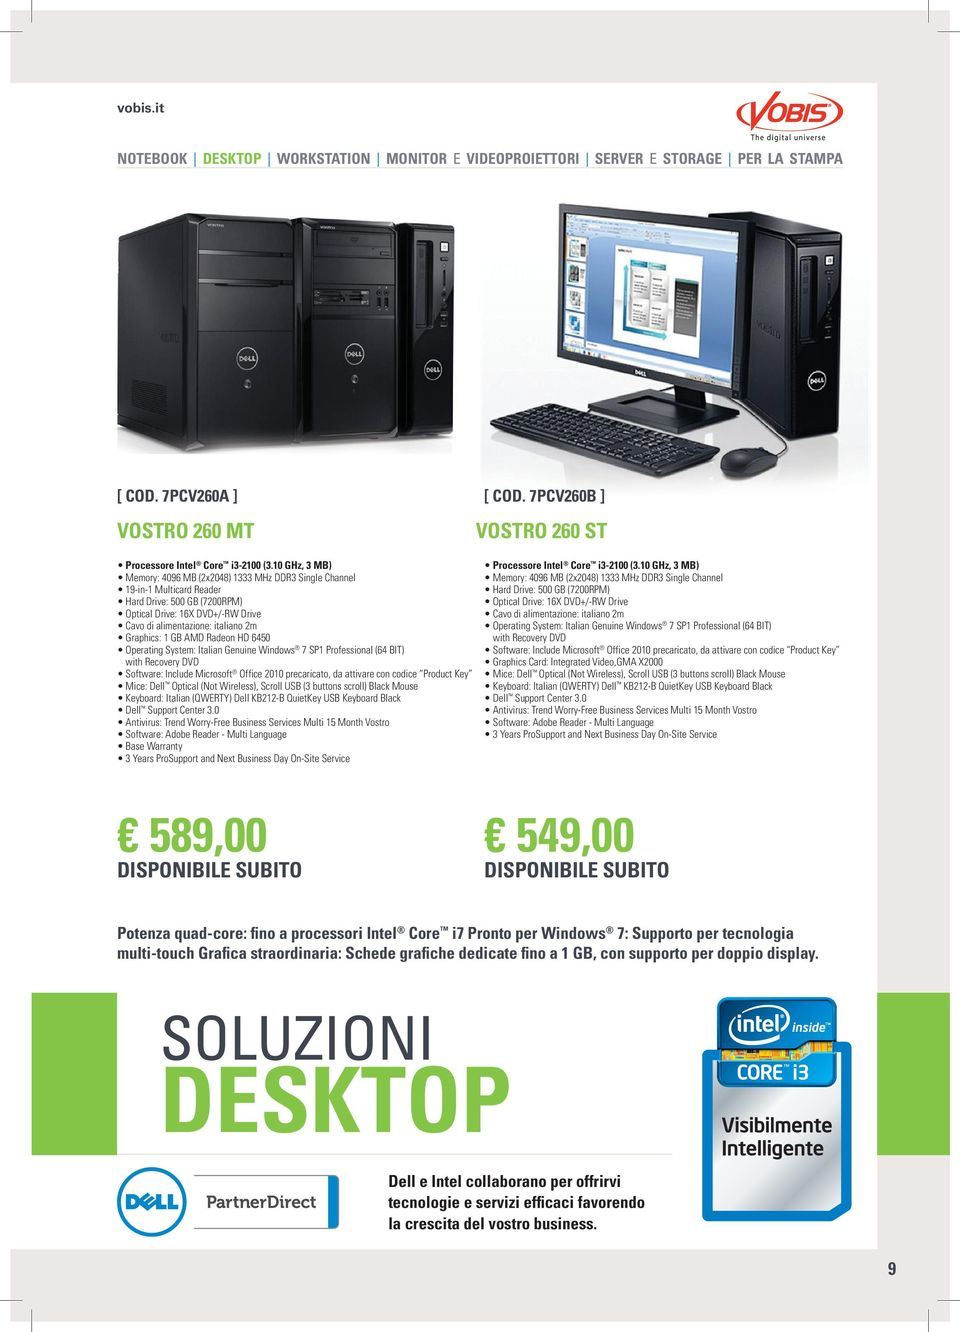 Graphics: 1 GB AMD Radeon HD 6450 Operating System: Italian Genuine Windows 7 SP1 Professional (64 BIT) with Recovery DVD Software: Include Microsoft Office 2010 precaricato, da attivare con codice